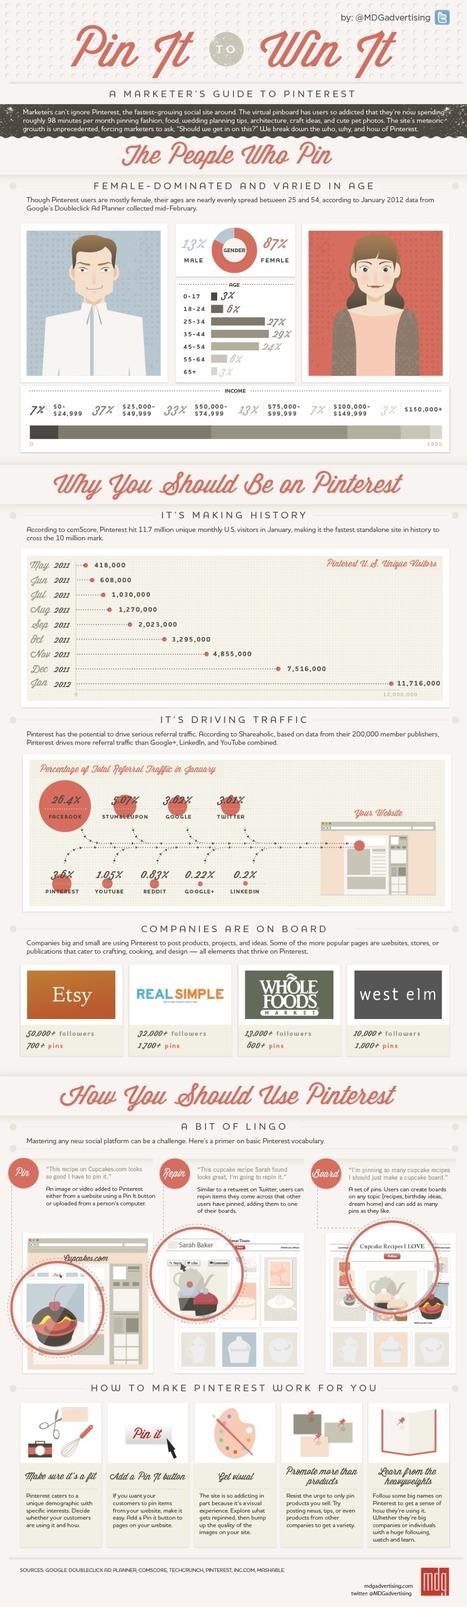 The Marketer's Guide to Pinterest [INFOGRAPHIC]   Cloud Central   Scoop.it